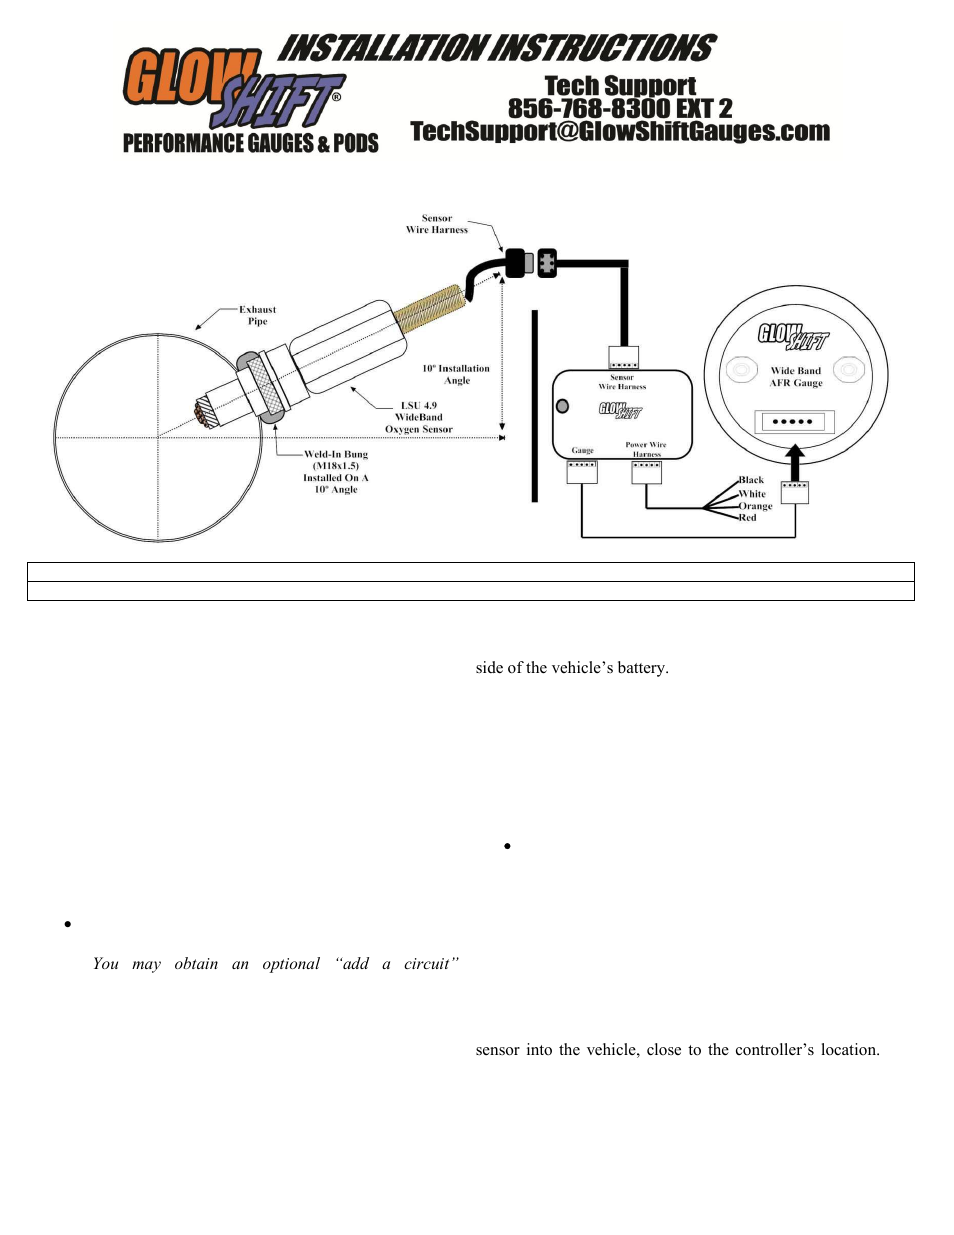 glowshift tinted series wideband air_fuel ratio gauge page1 glowshift tinted series wideband air_fuel ratio gauge user manual glowshift air fuel ratio gauge wiring diagram at gsmportal.co